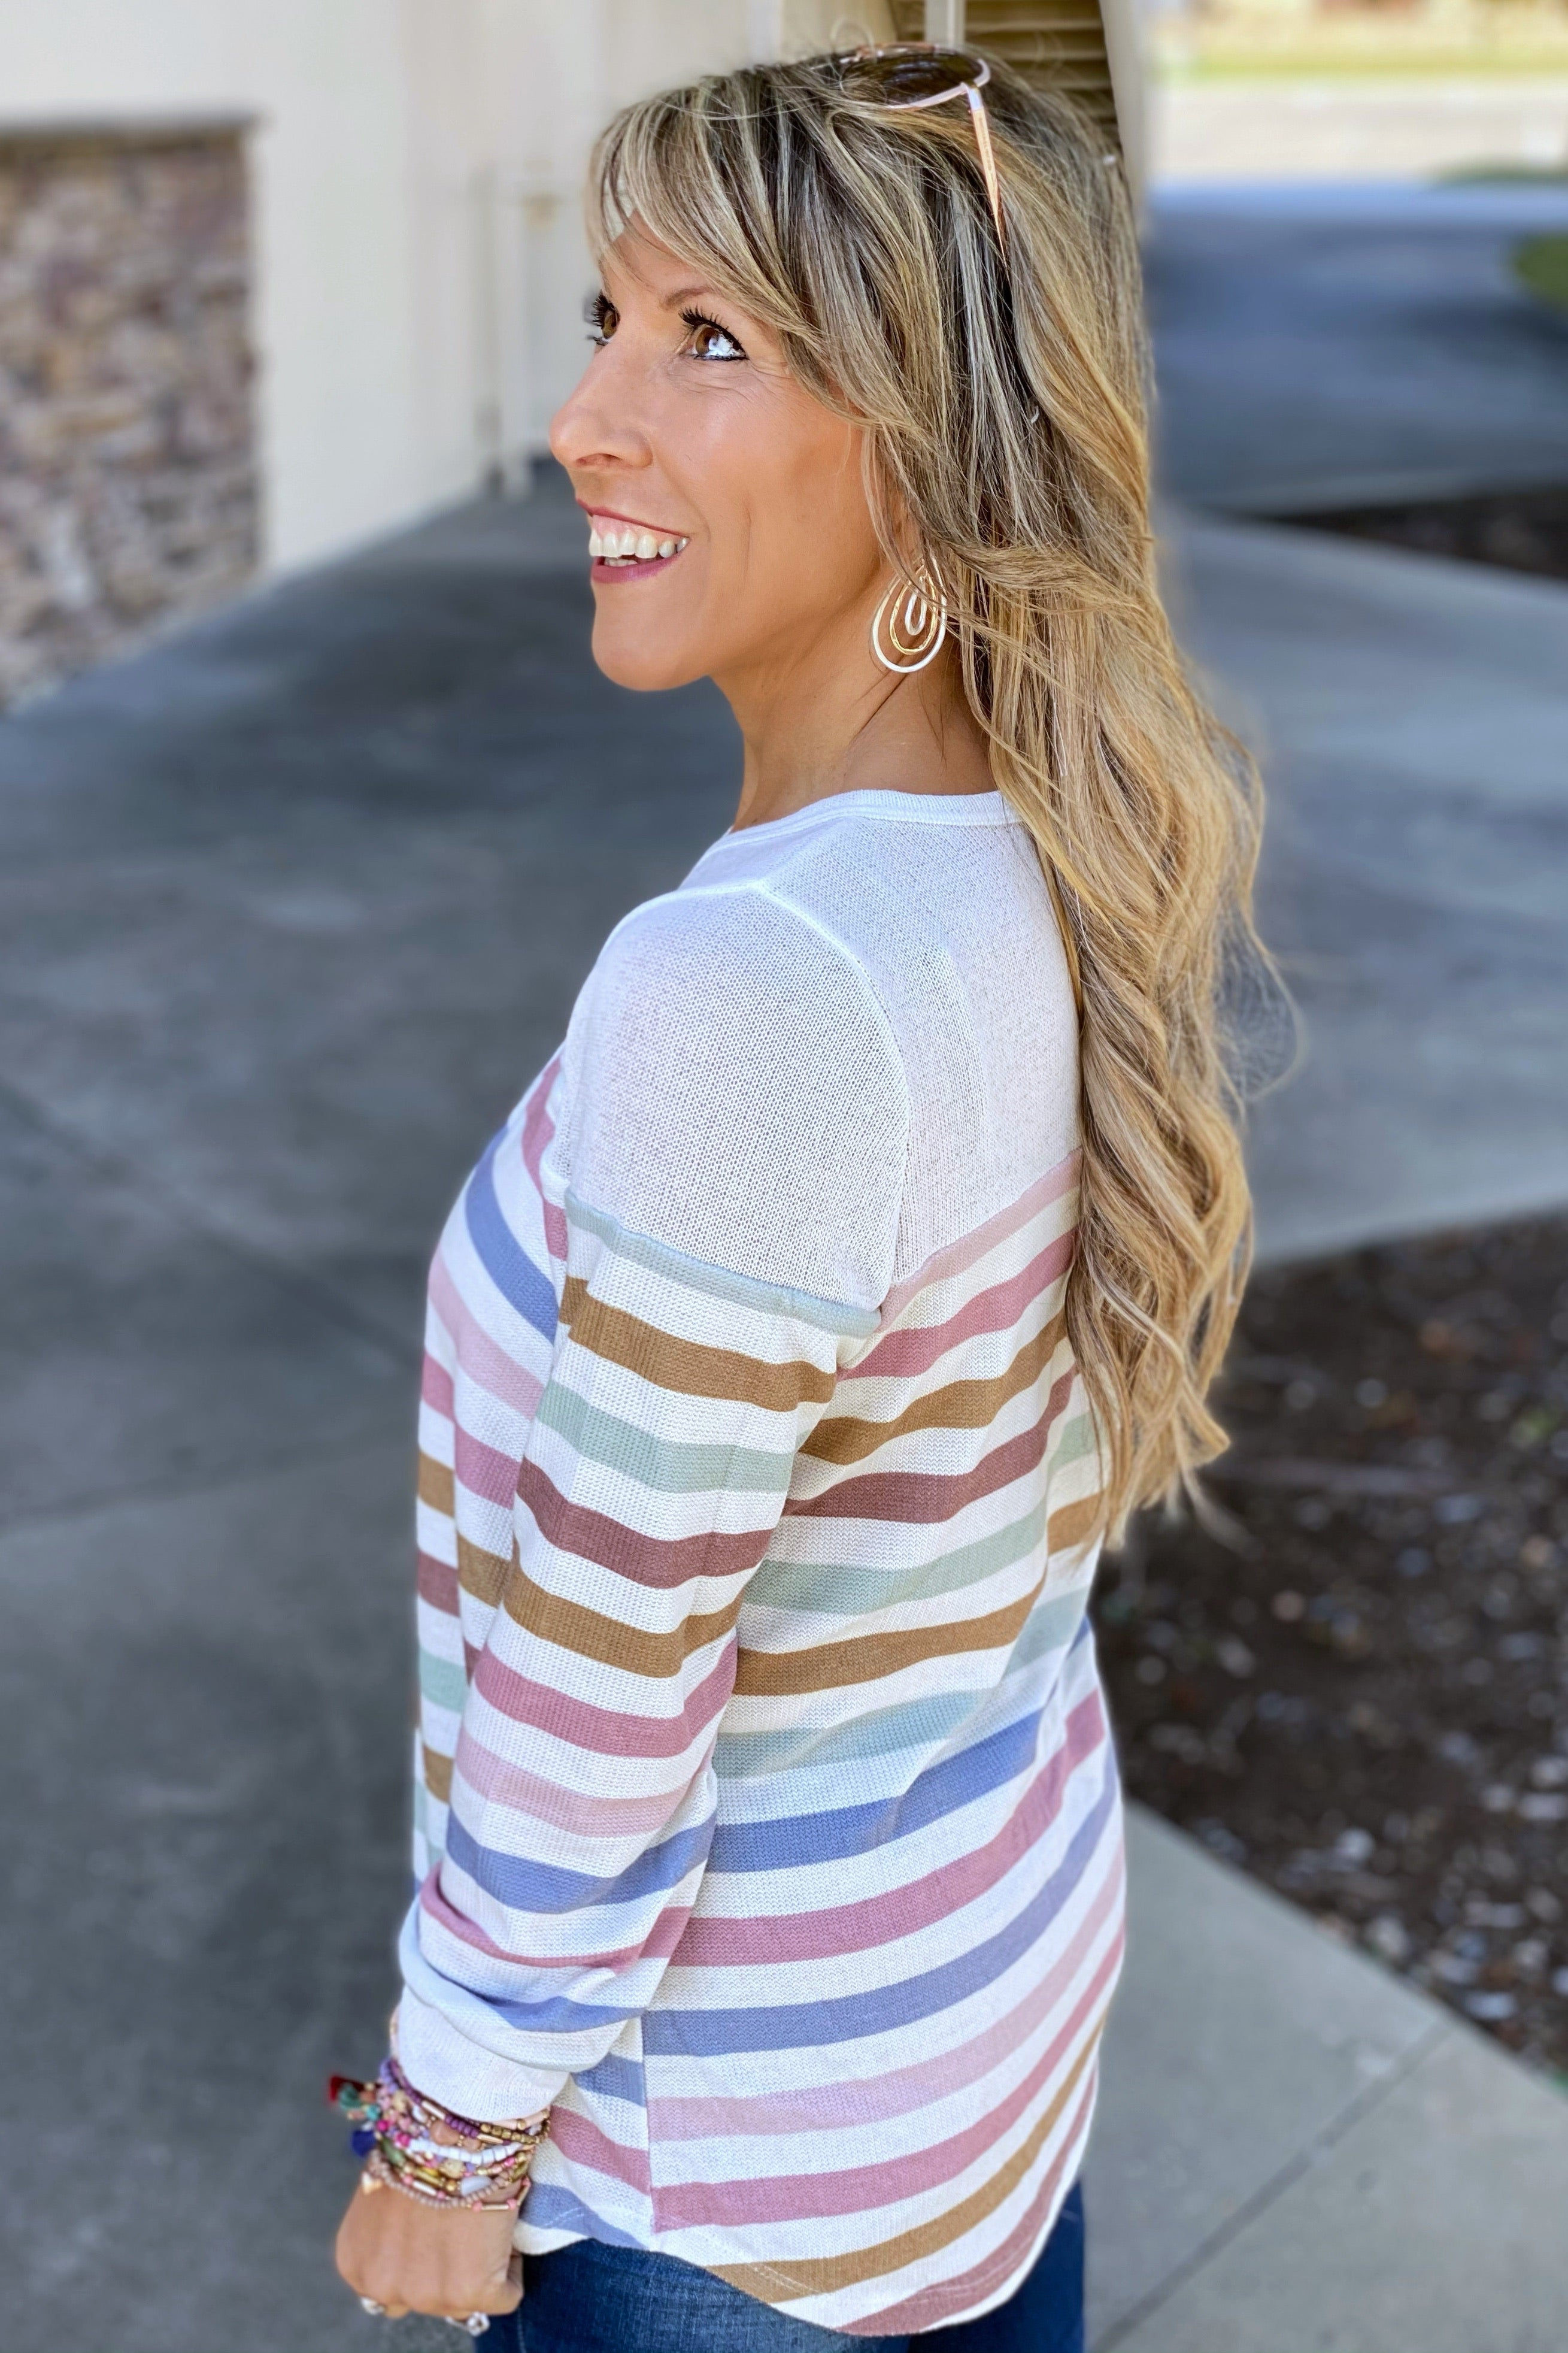 Here With You Multi Color Stripe Knit Top with Buttoned Front Neckline & Contrast Yoke, White